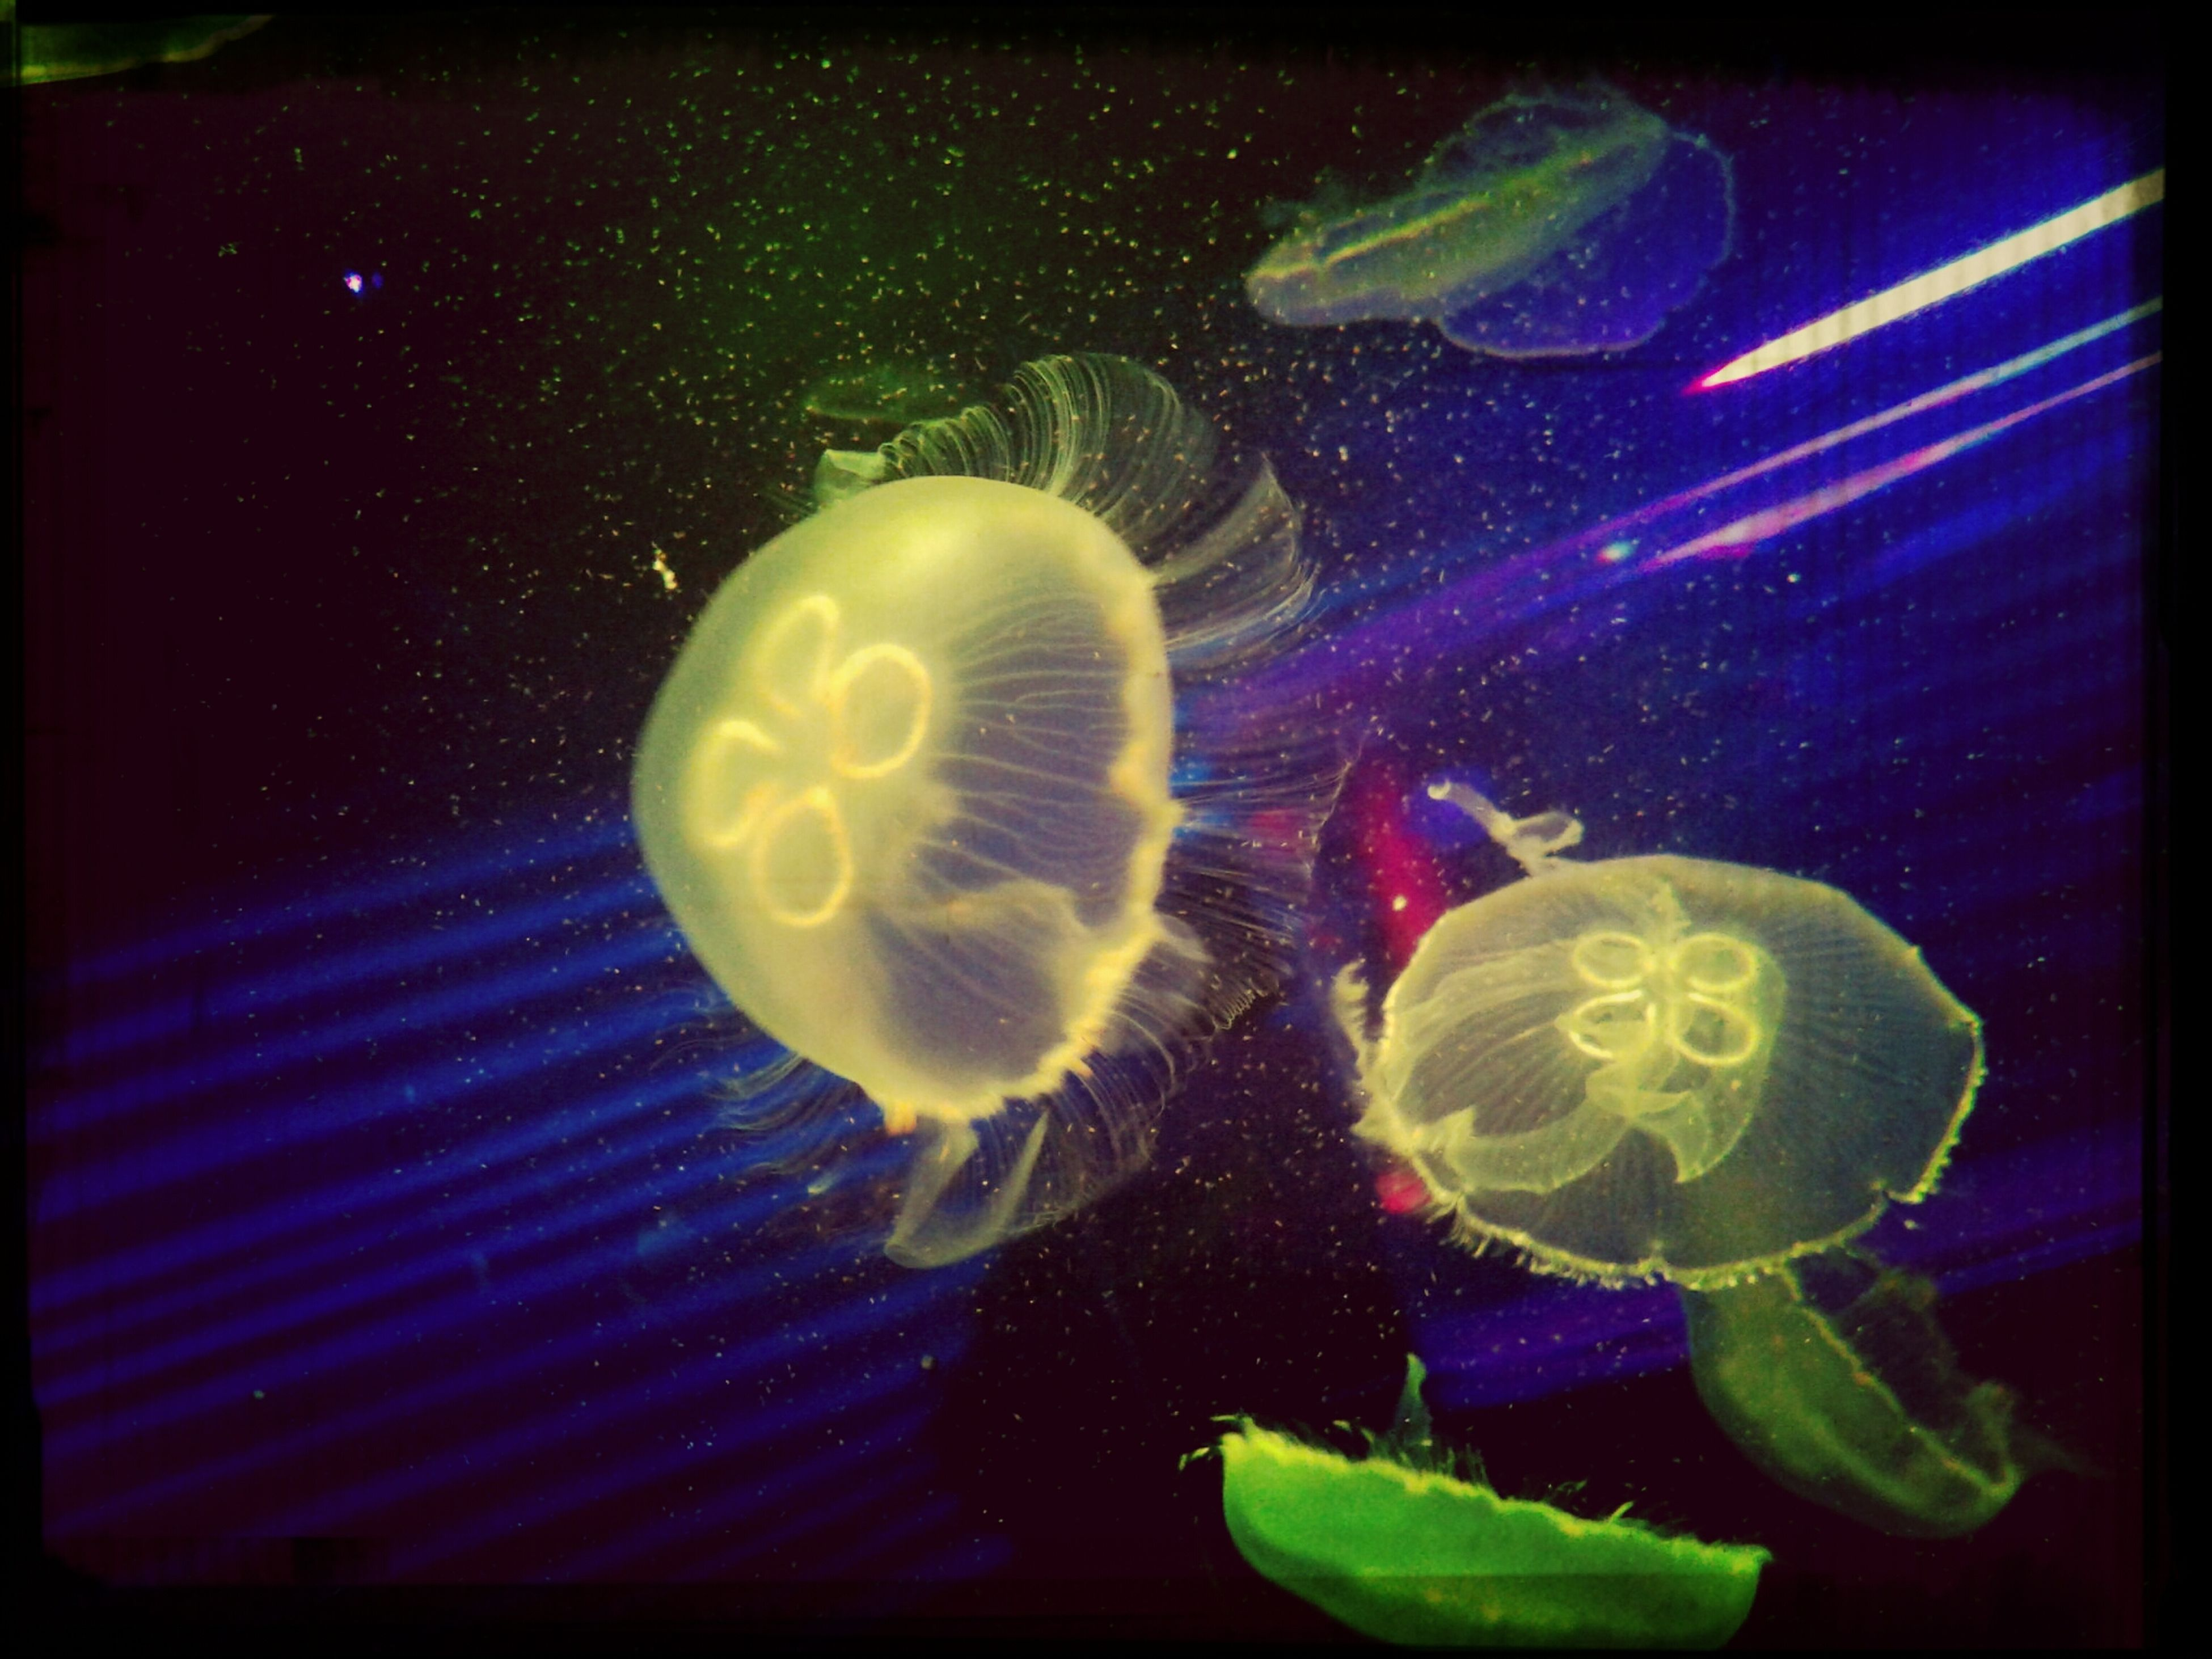 water, underwater, animal themes, swimming, close-up, sea life, wildlife, fish, beauty in nature, animals in the wild, indoors, nature, fragility, flower, aquarium, one animal, freshness, undersea, jellyfish, no people